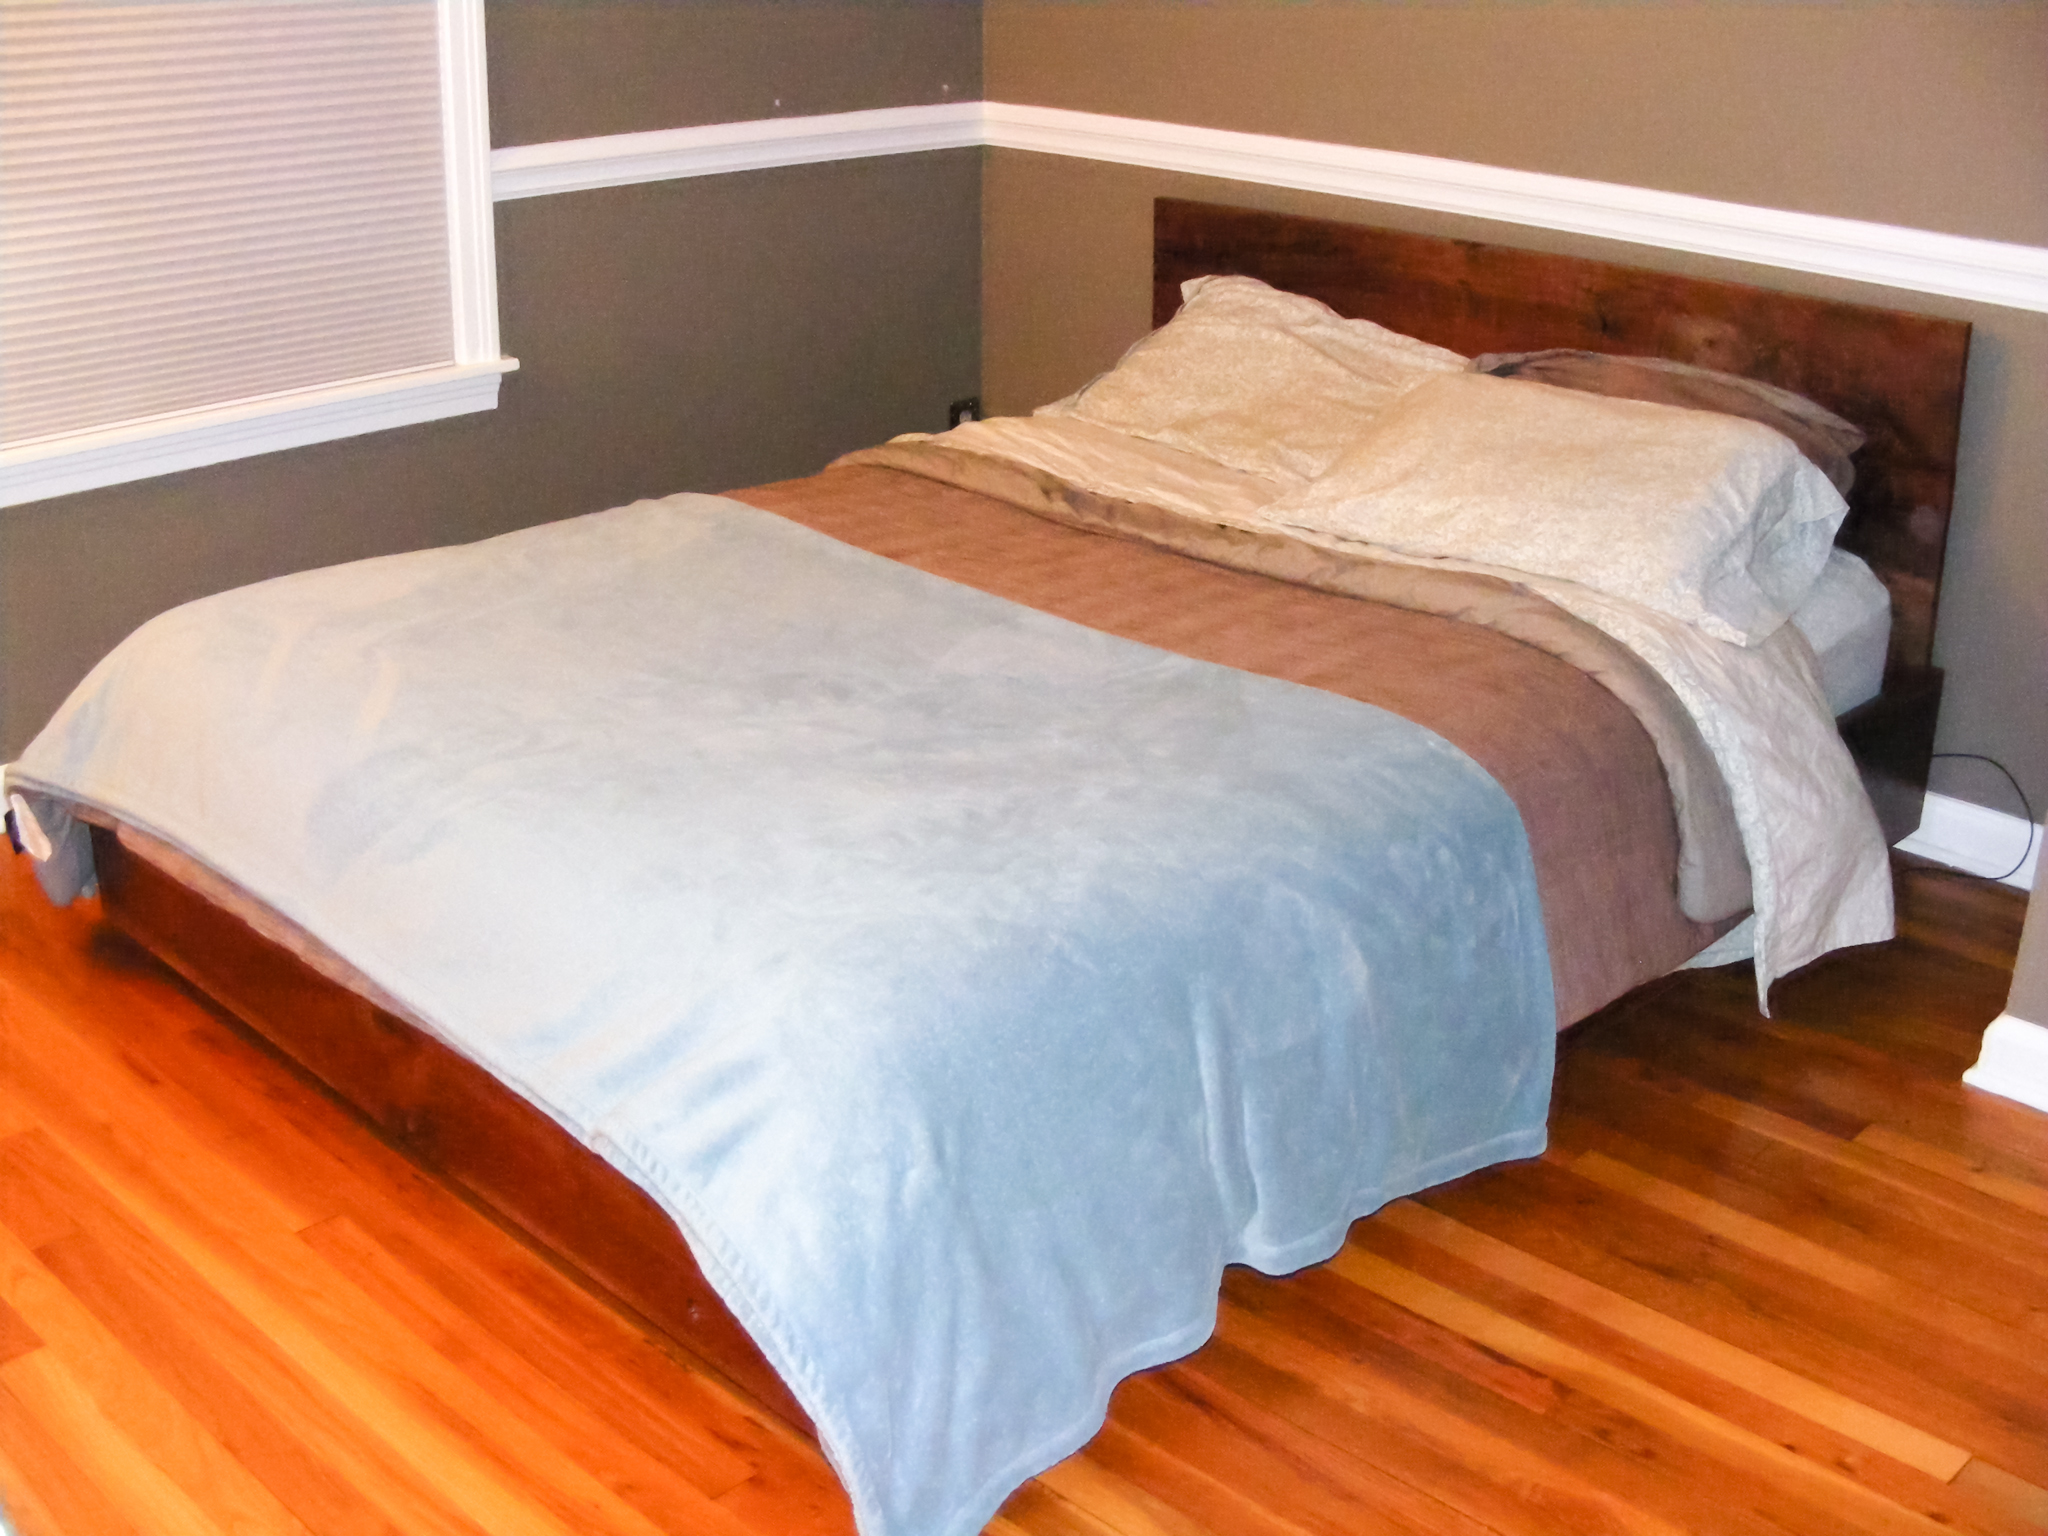 The completed bed with our mattress, sheets, blankets, and pillows!